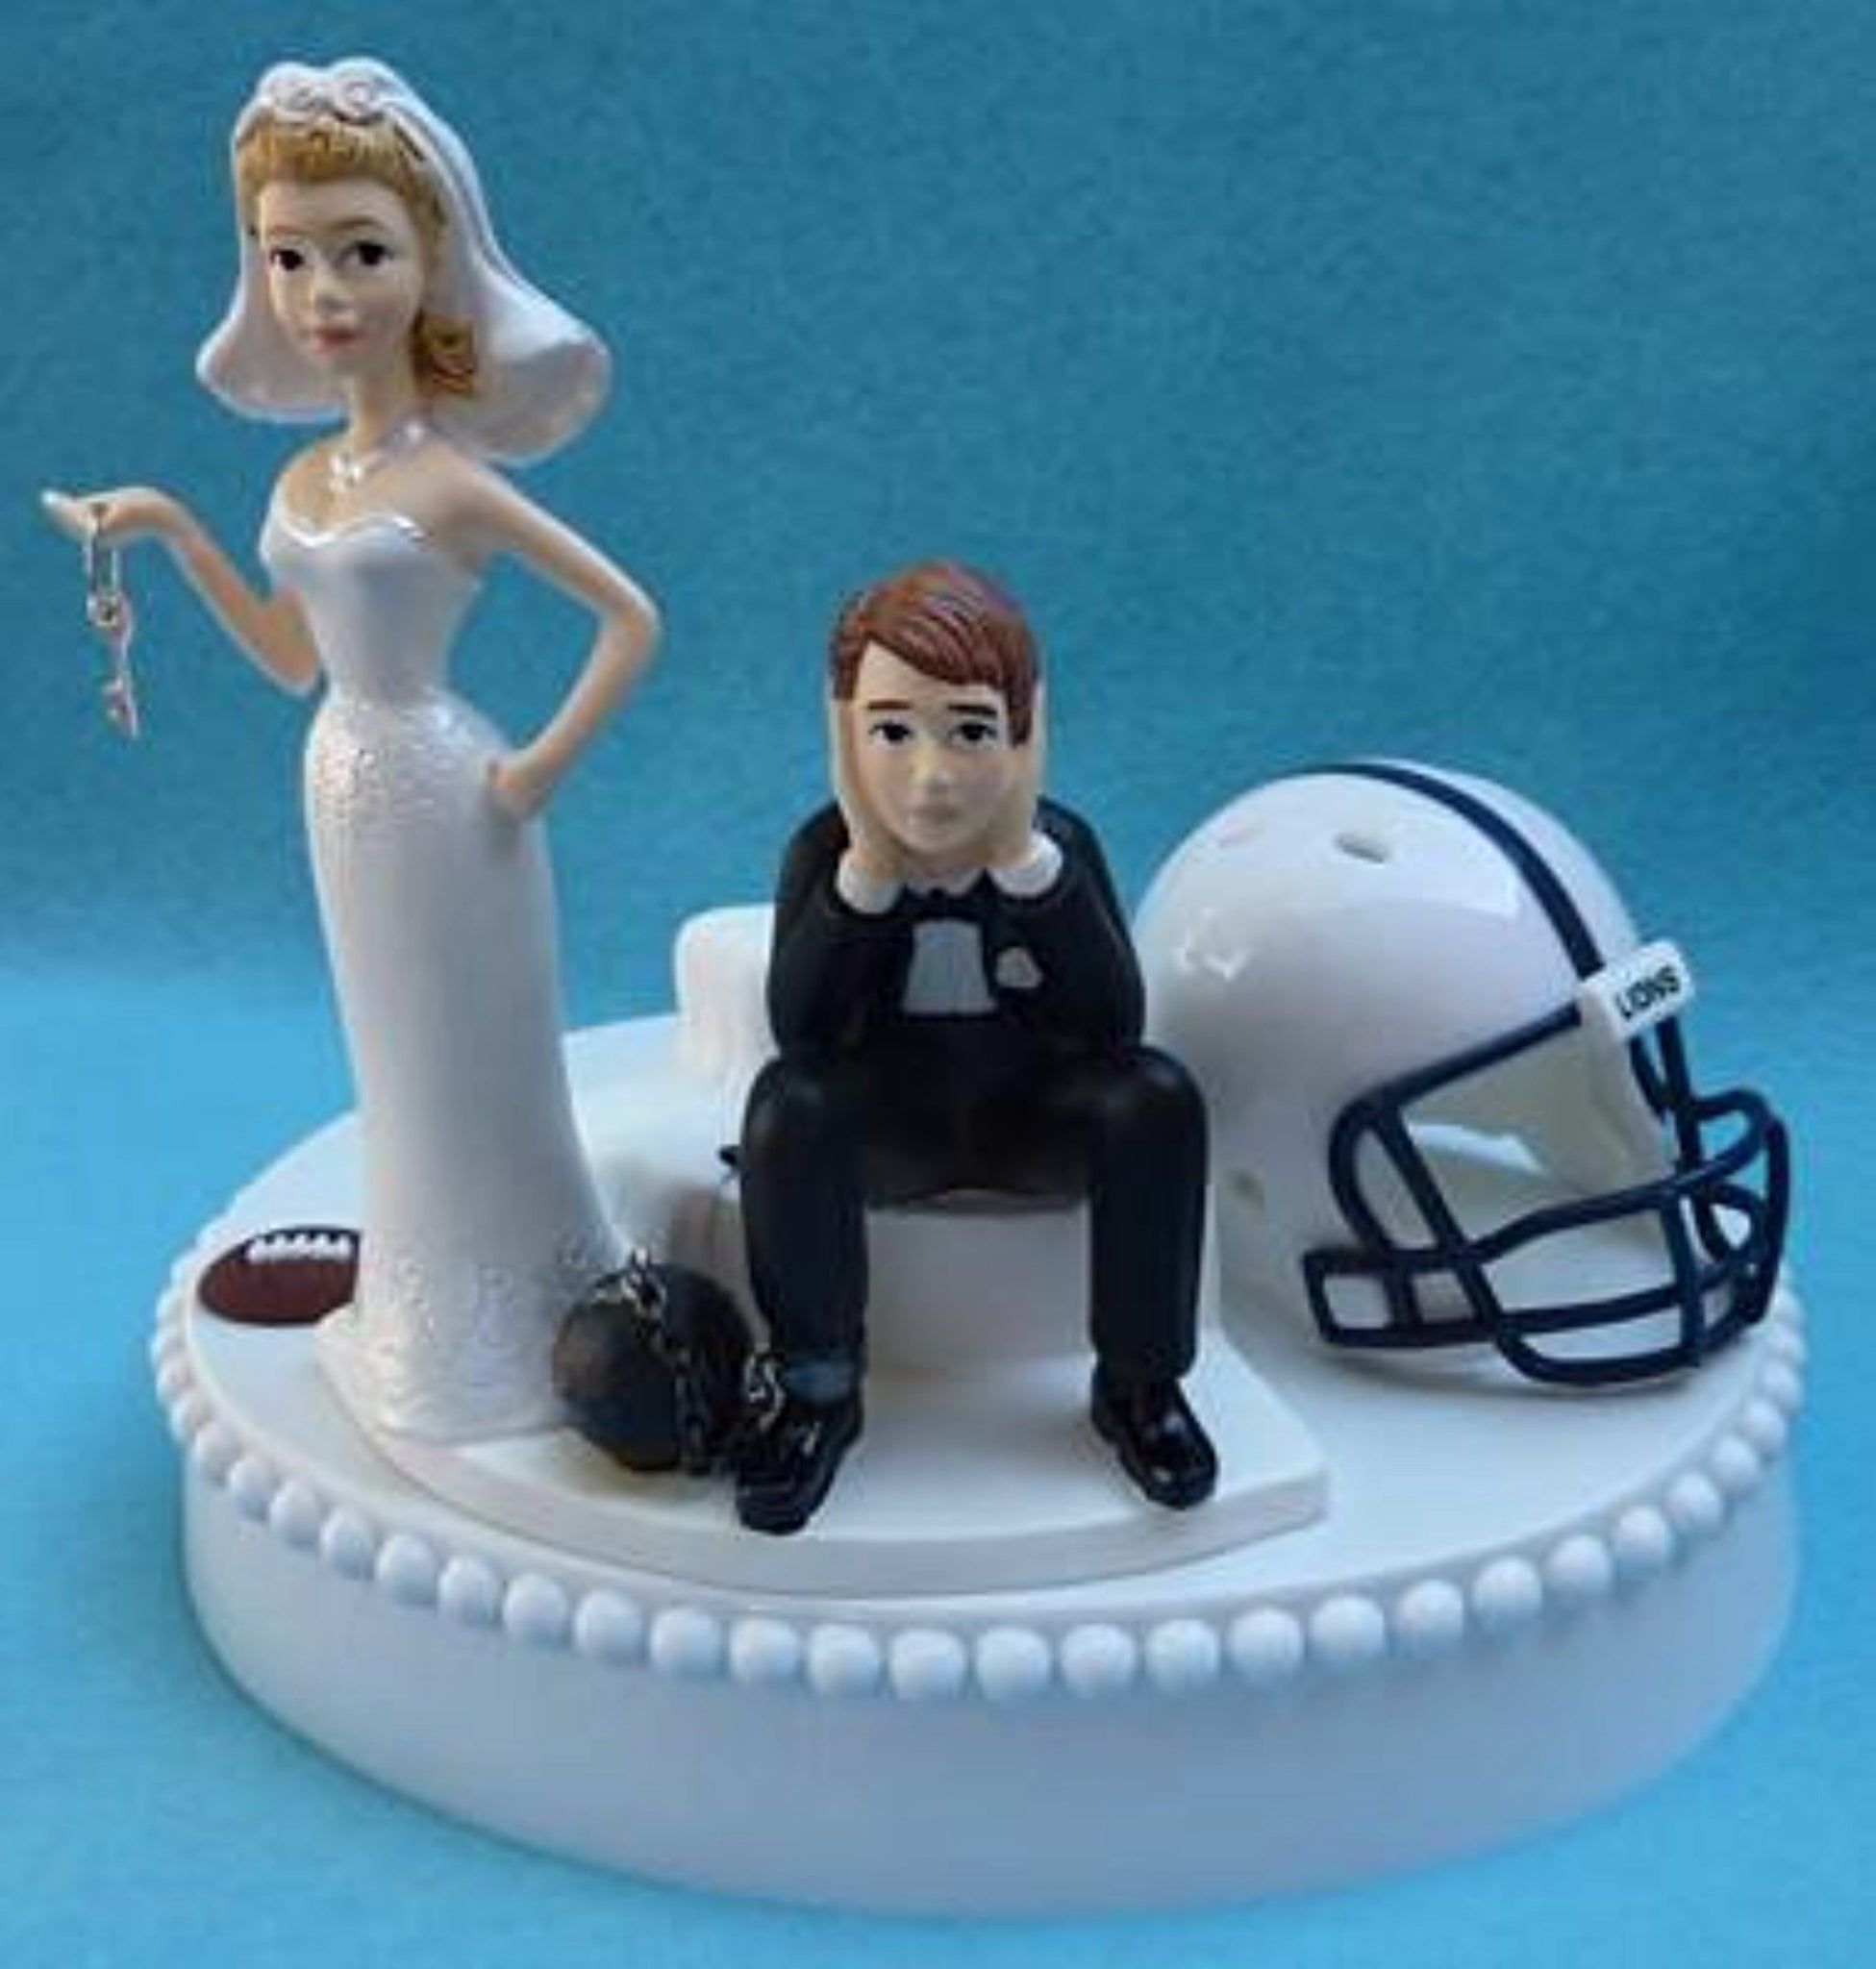 PSU Nittany Lions wedding cake topper Penn St. University football bride sad groom humorous sports fans funny Fun Wedding Things